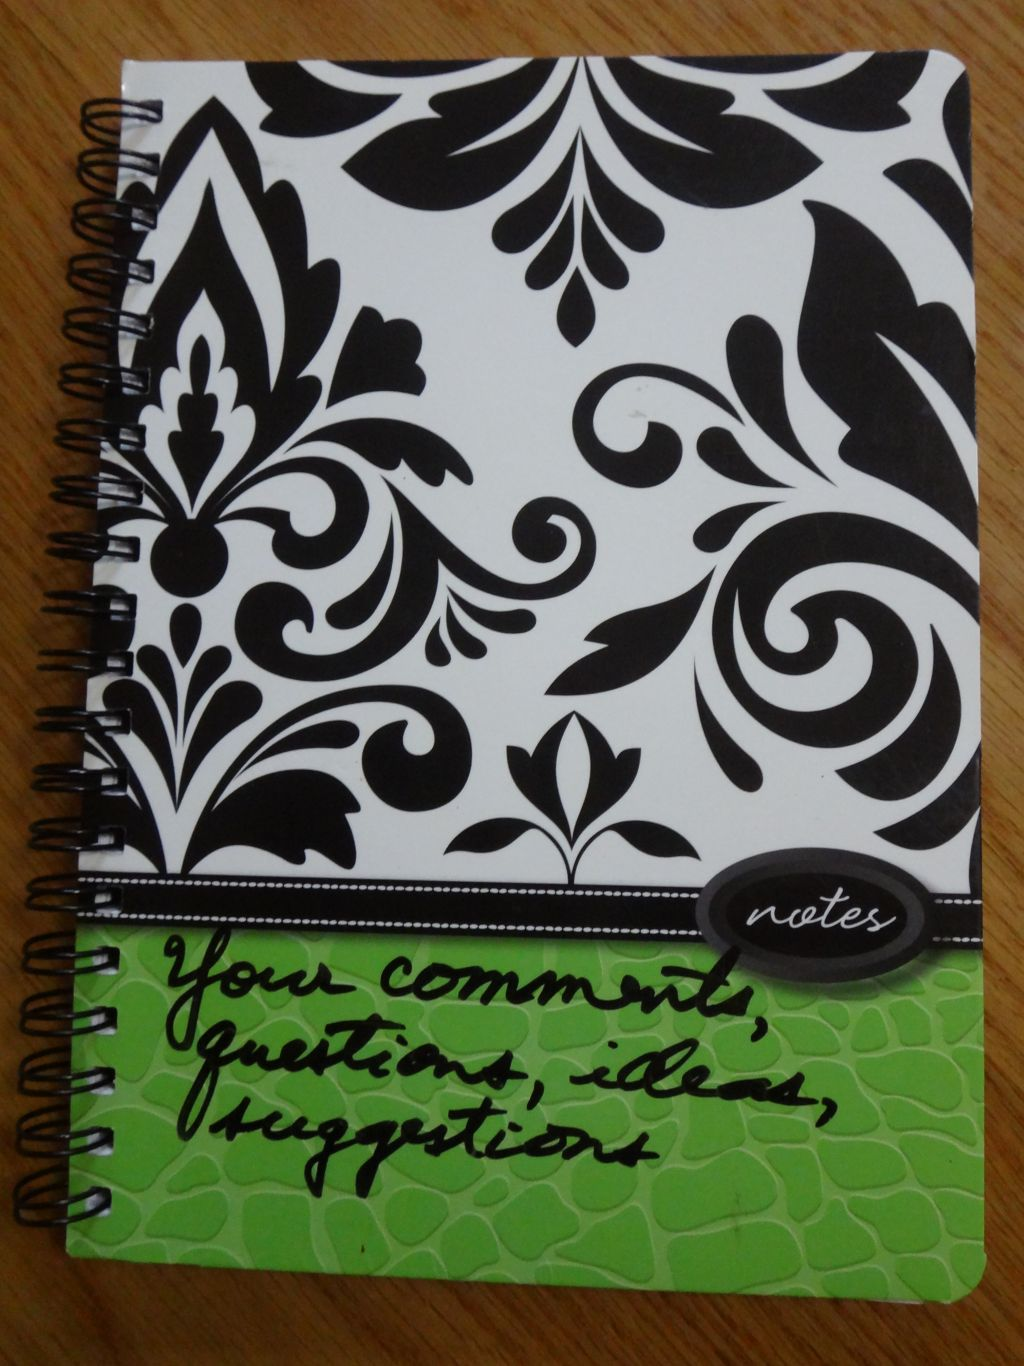 Comments notebook.  Click to see comments.